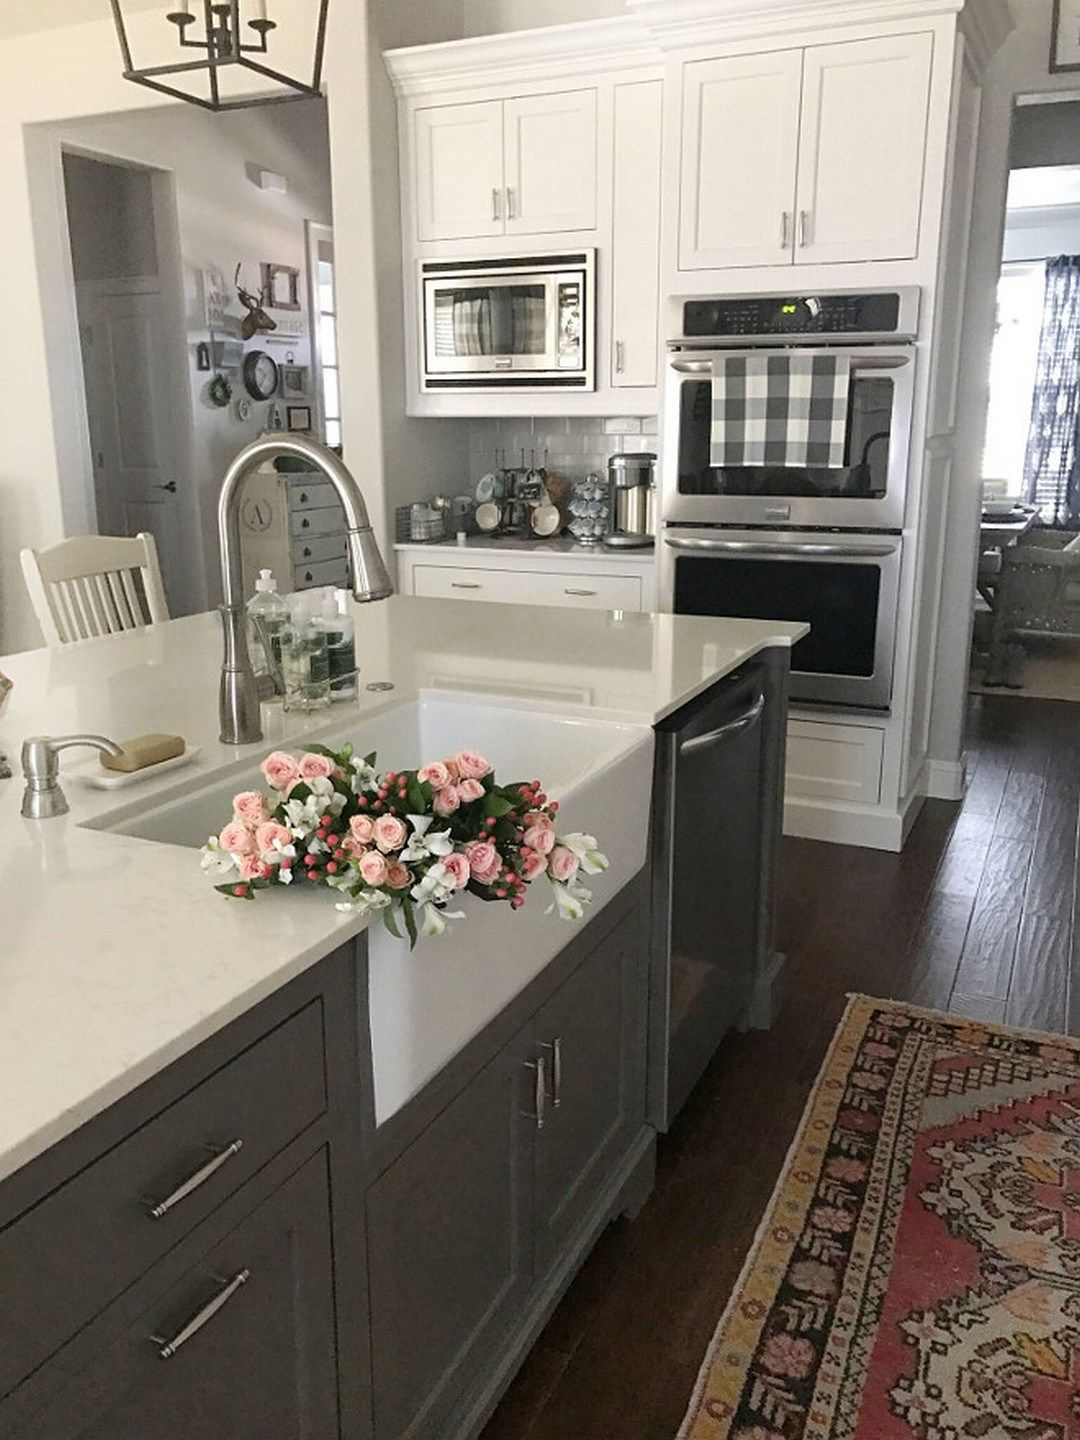 99 farmhouse kitchen ideas on a budget 2017 23 just gorgeous 99 farmhouse kitchen ideas on a budget 2017 23 just gorgeous